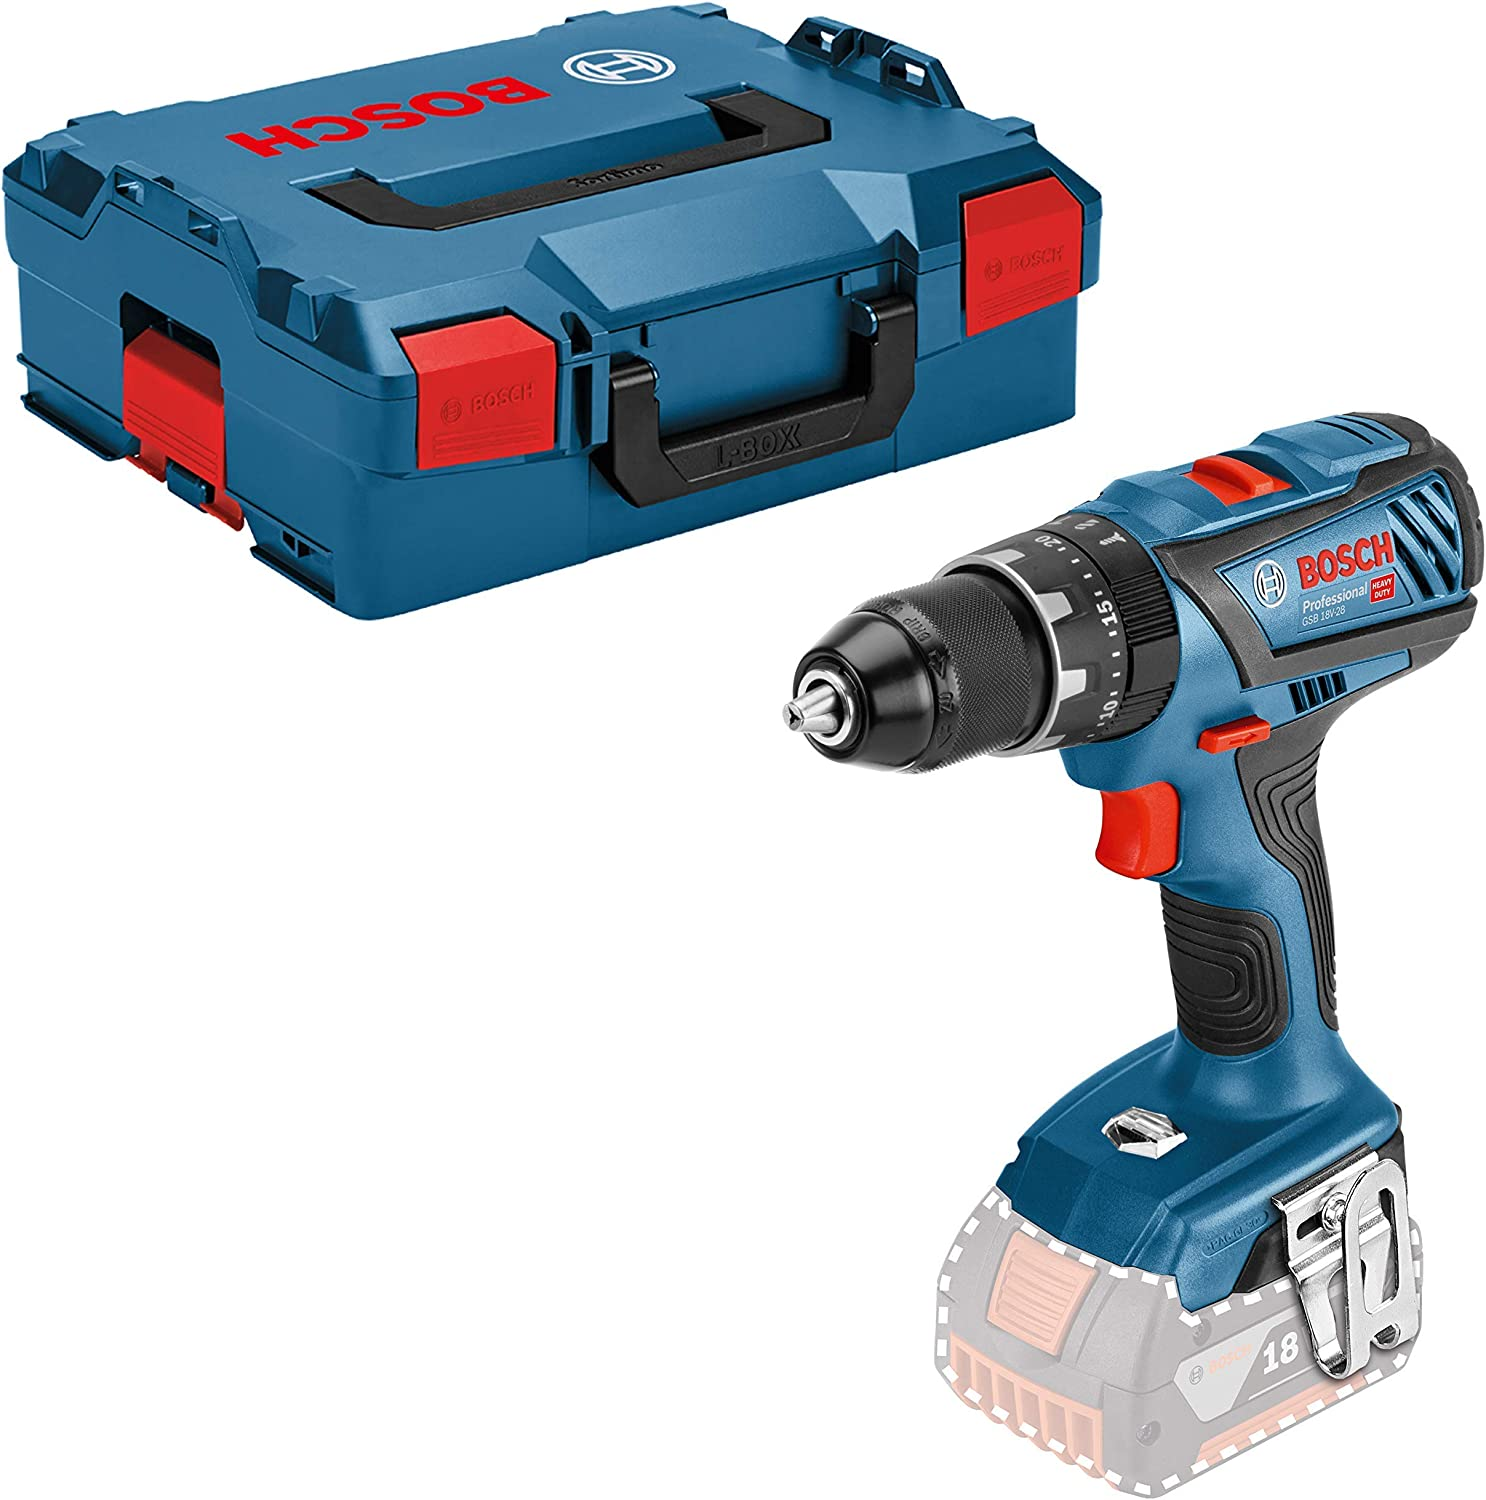 Bosch Professional 06019h4008 Gsb 18v 28 Drills Screwdrivers Blue Amazon Co Uk Diy Tools